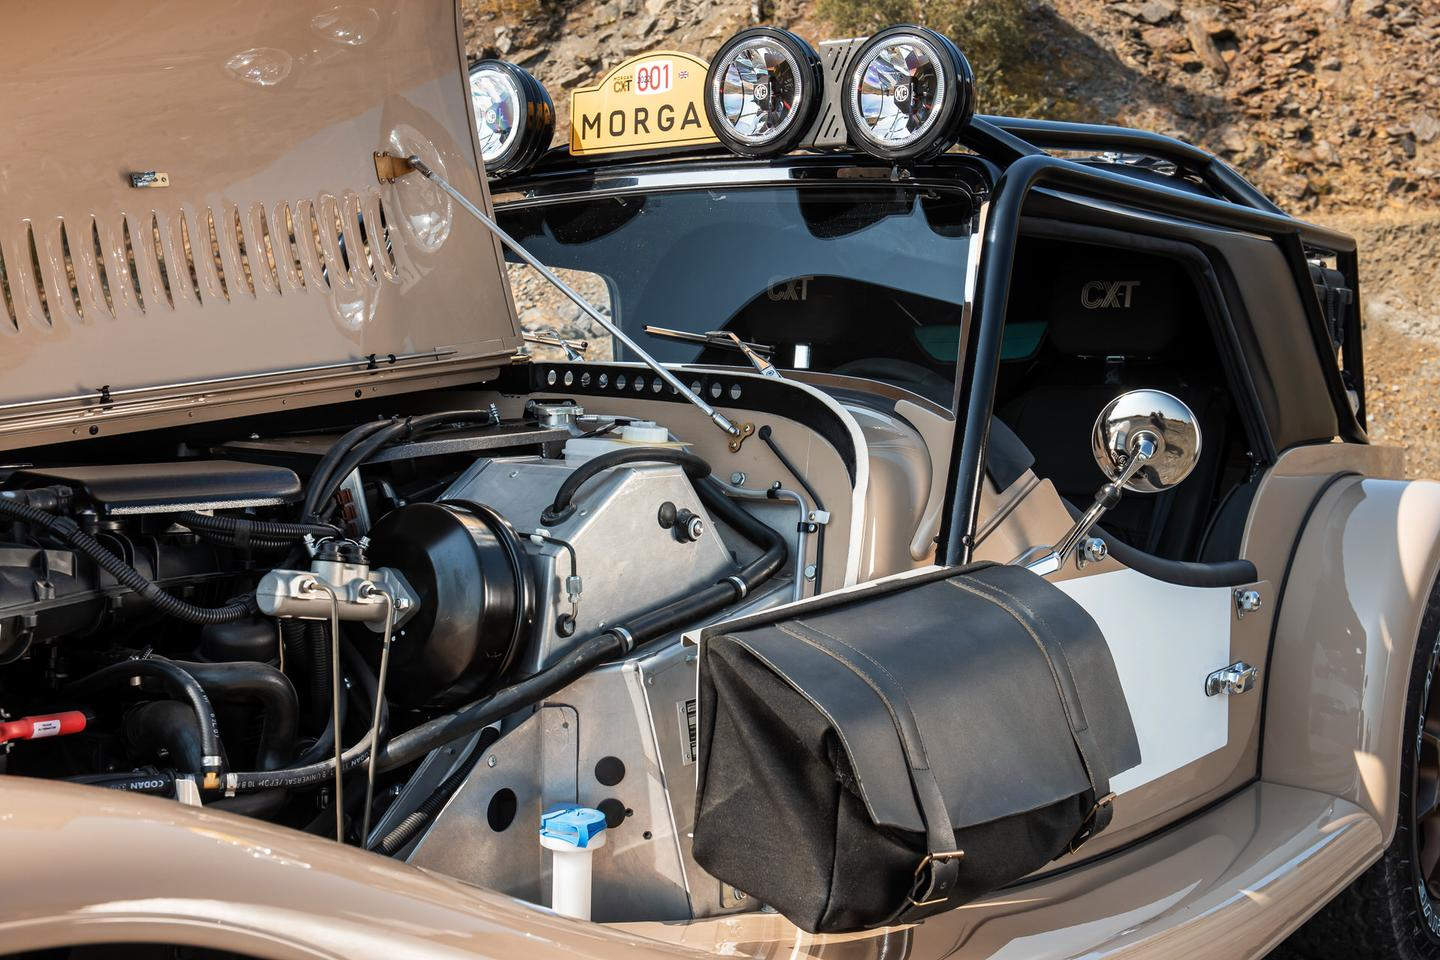 The CX-T comes powered by the standard Plus Four BMW turbo four, but it features an array of off-road modifications throughout